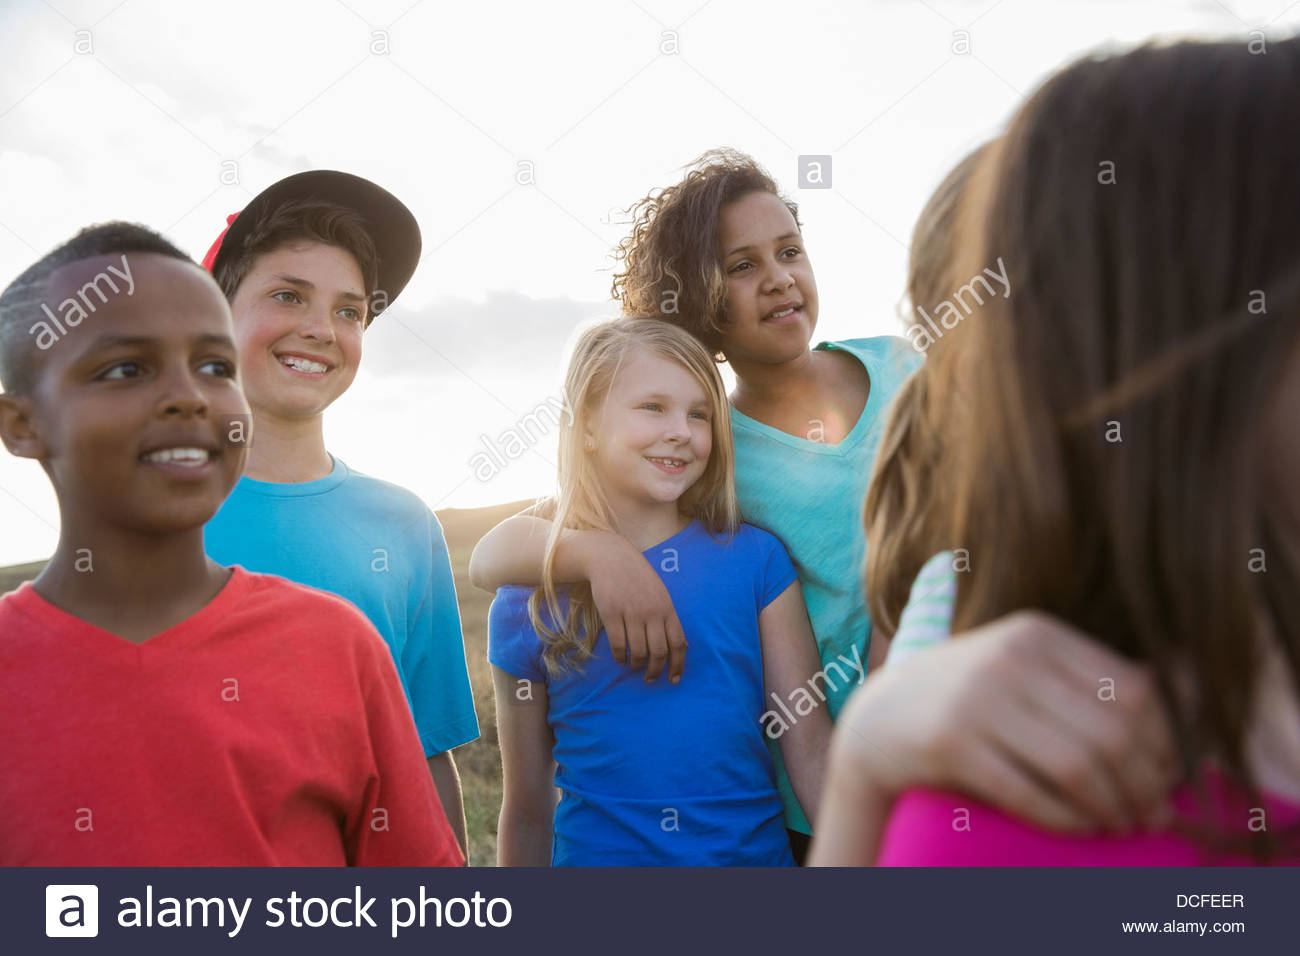 Group of kids standing together outdoors - Stock Image